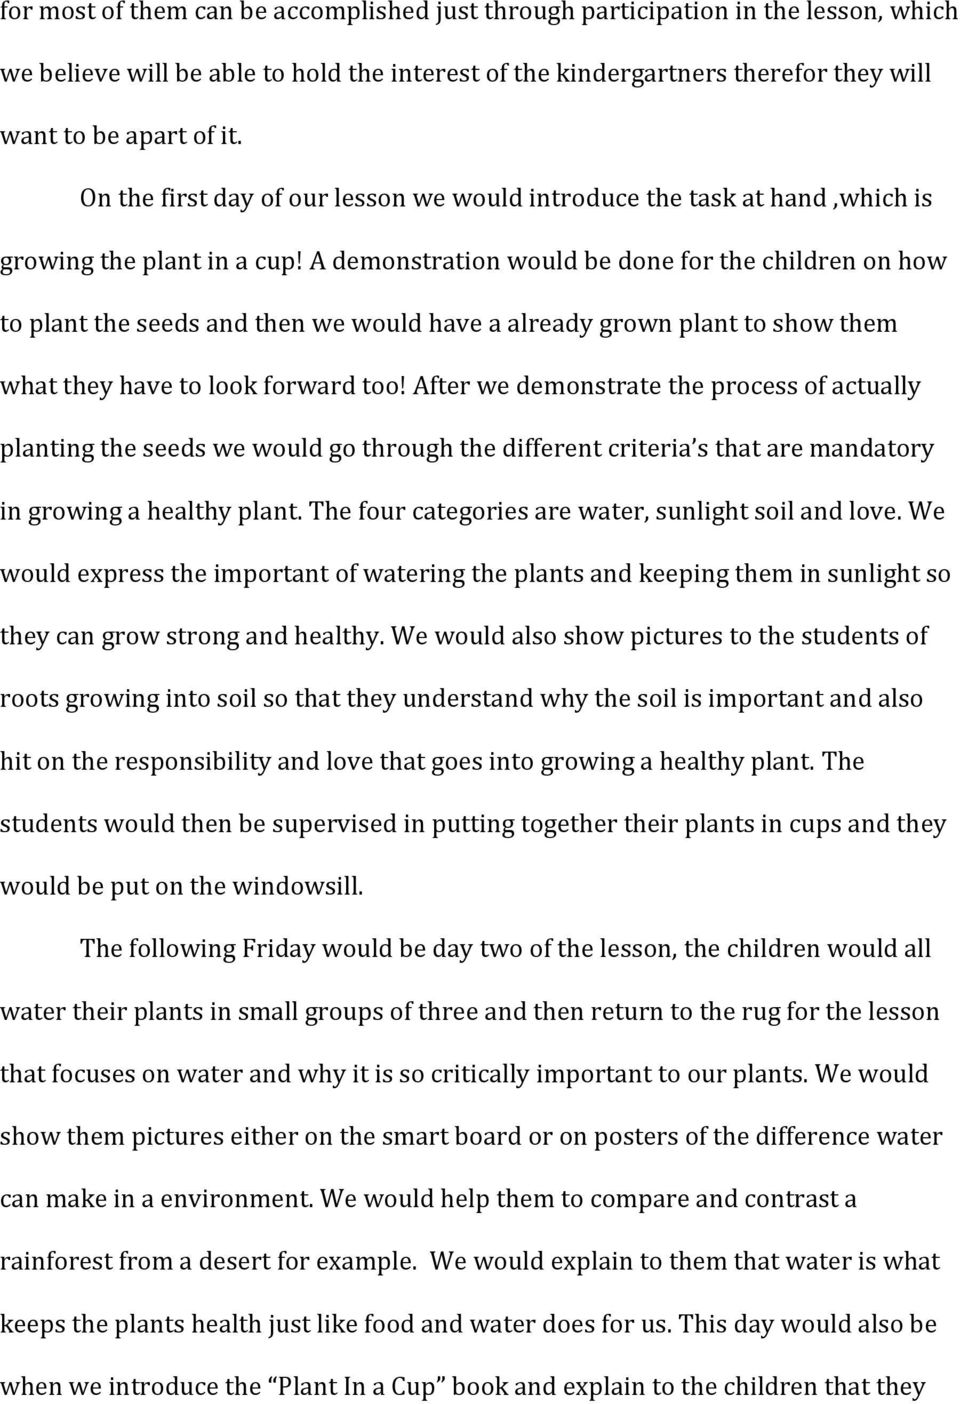 A demonstration would be done for the children on how to plant the seeds and then we would have a already grown plant to show them what they have to look forward too!